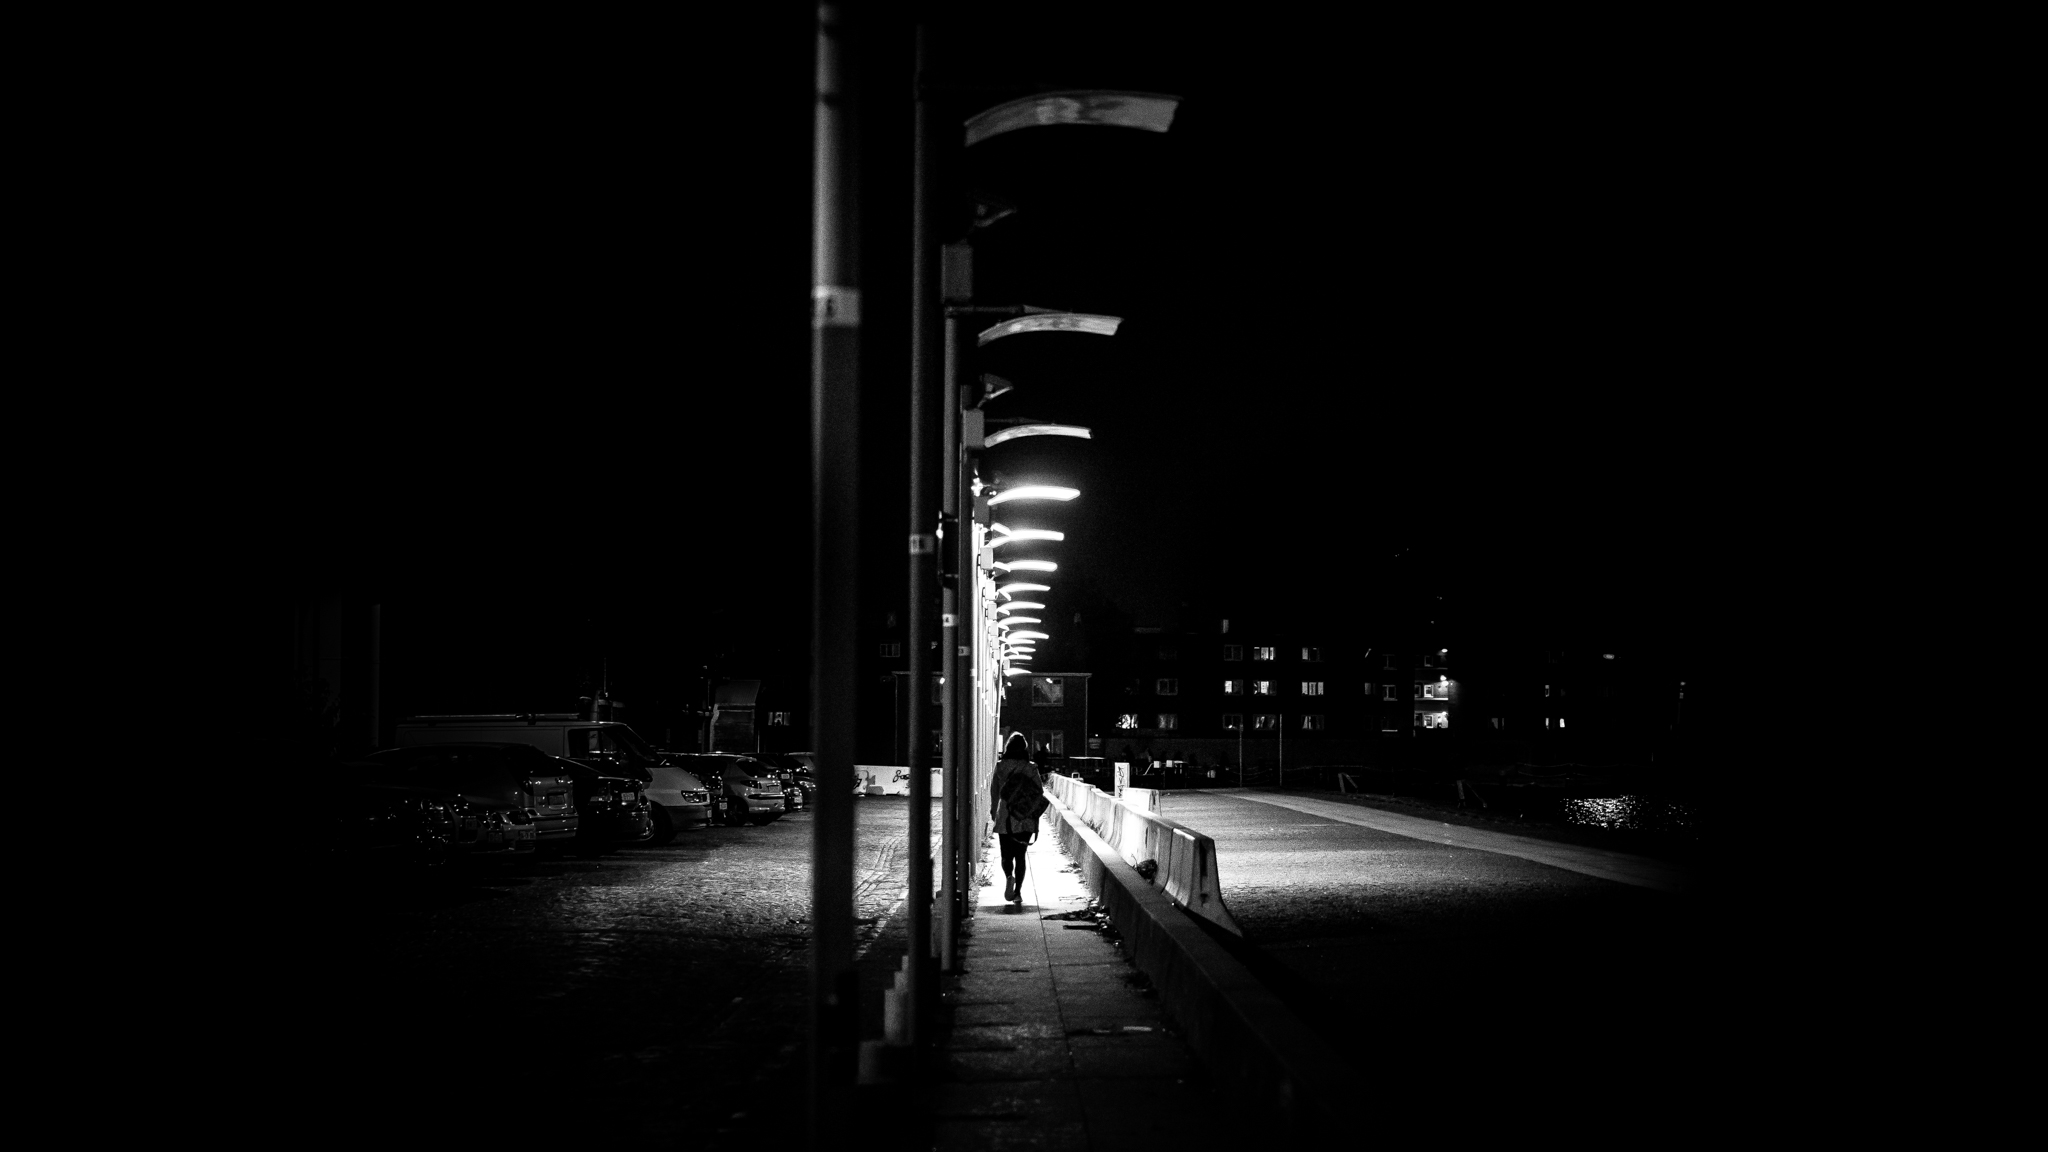 The path - Dublin, Ireland - Black and white street photography